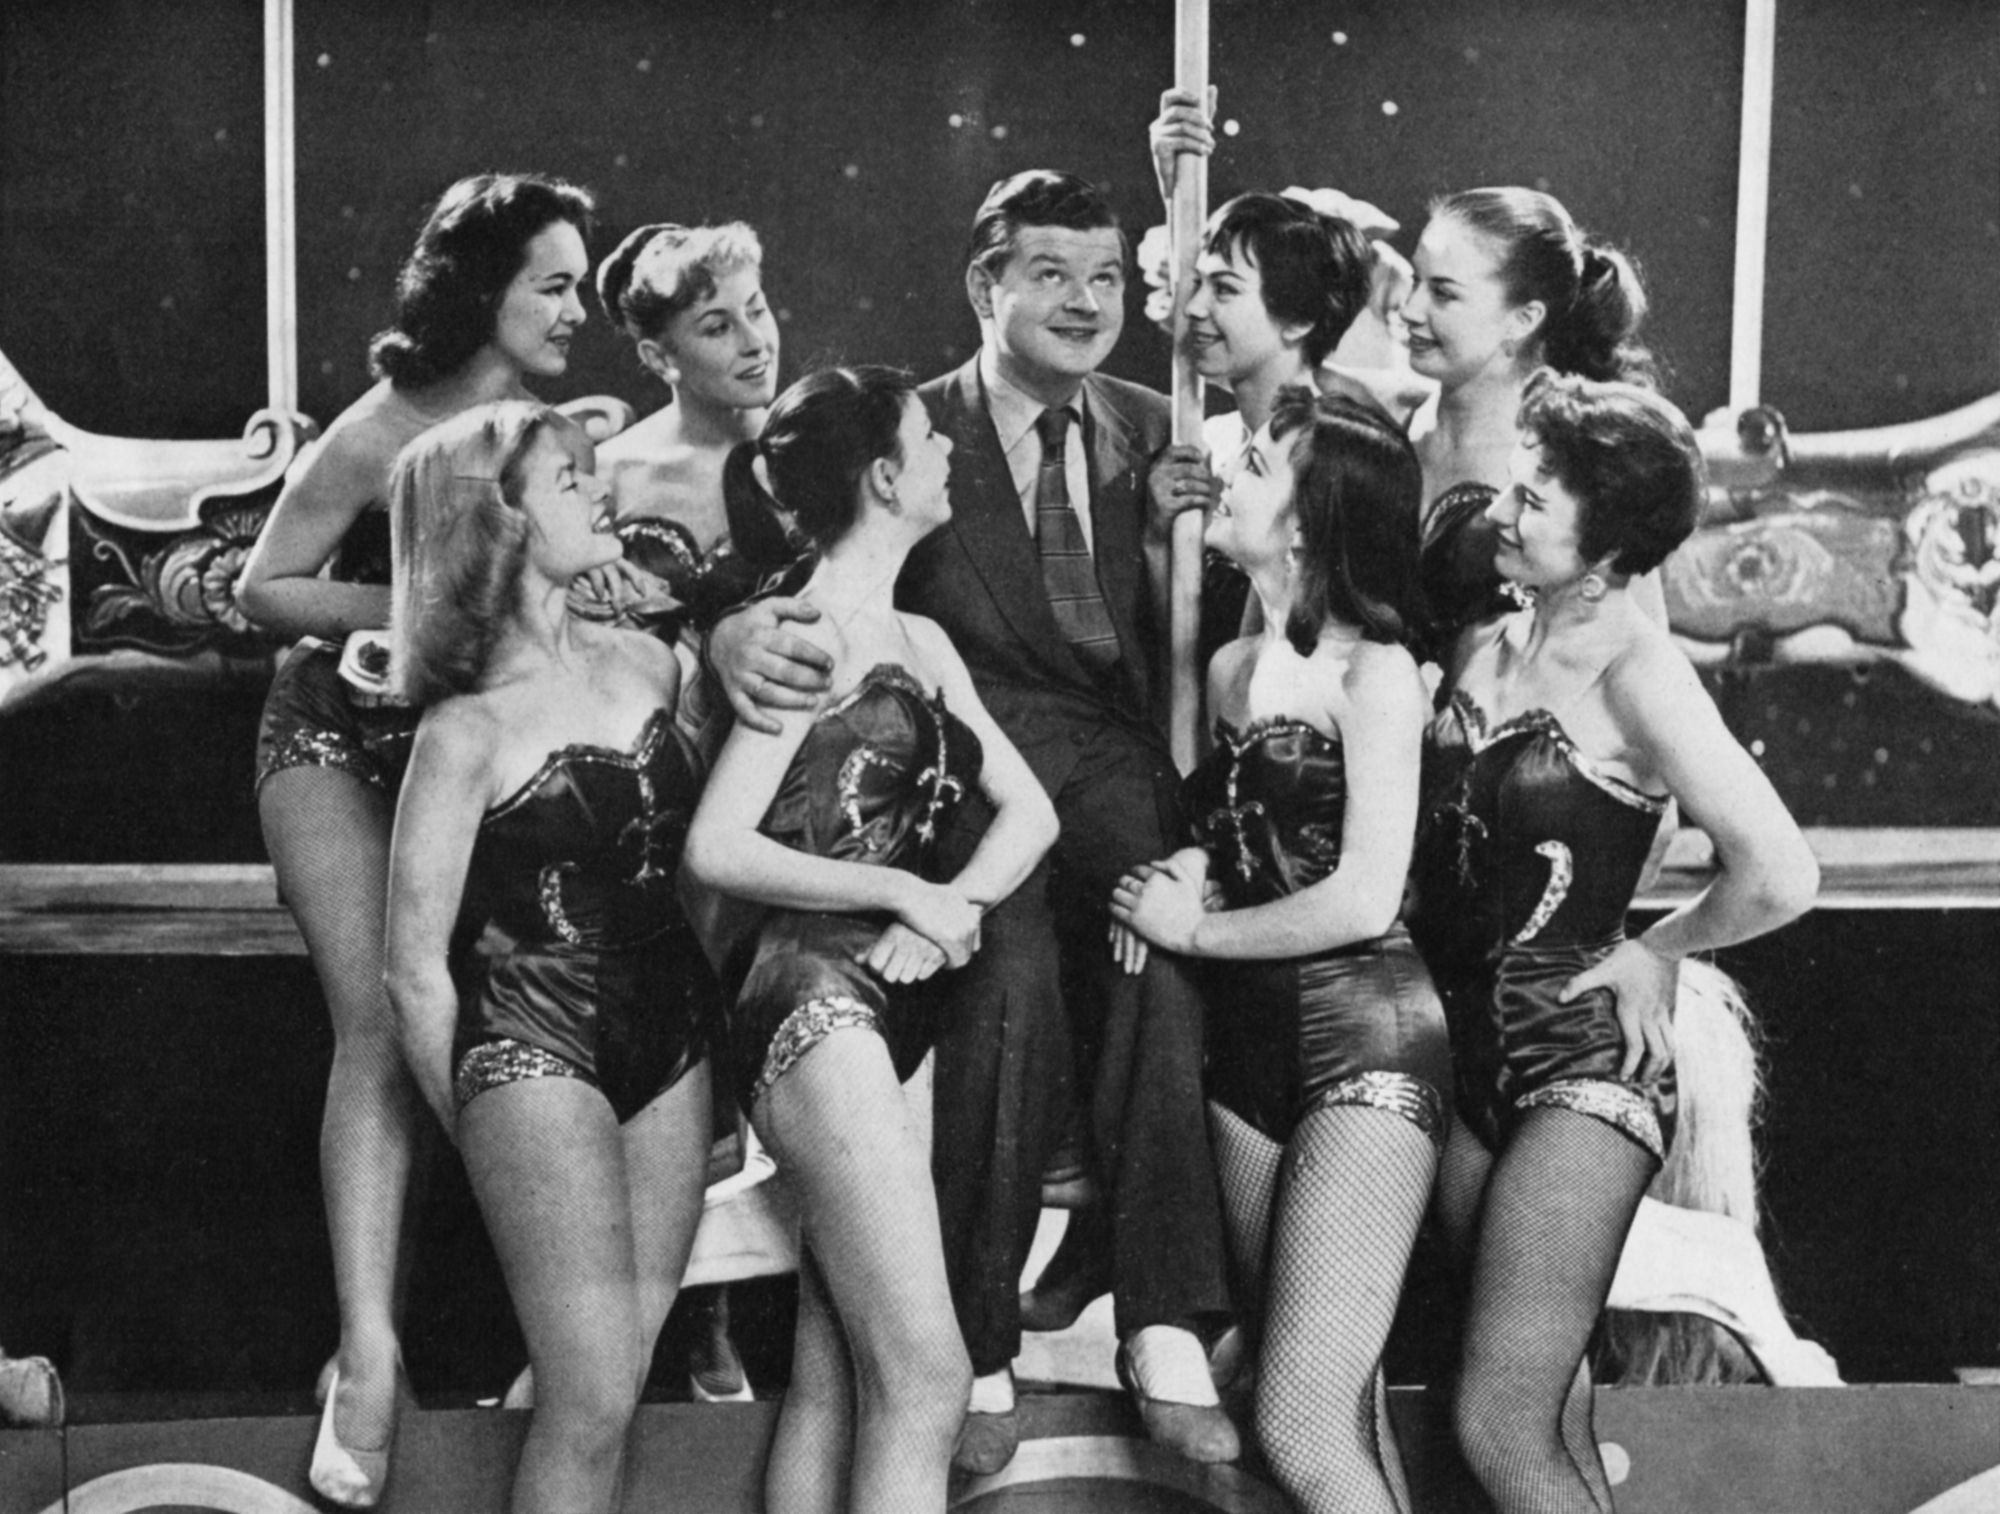 Benny Hill sits on the edge of a carousel whilse surrounded by 8 girls in skimpy costumes